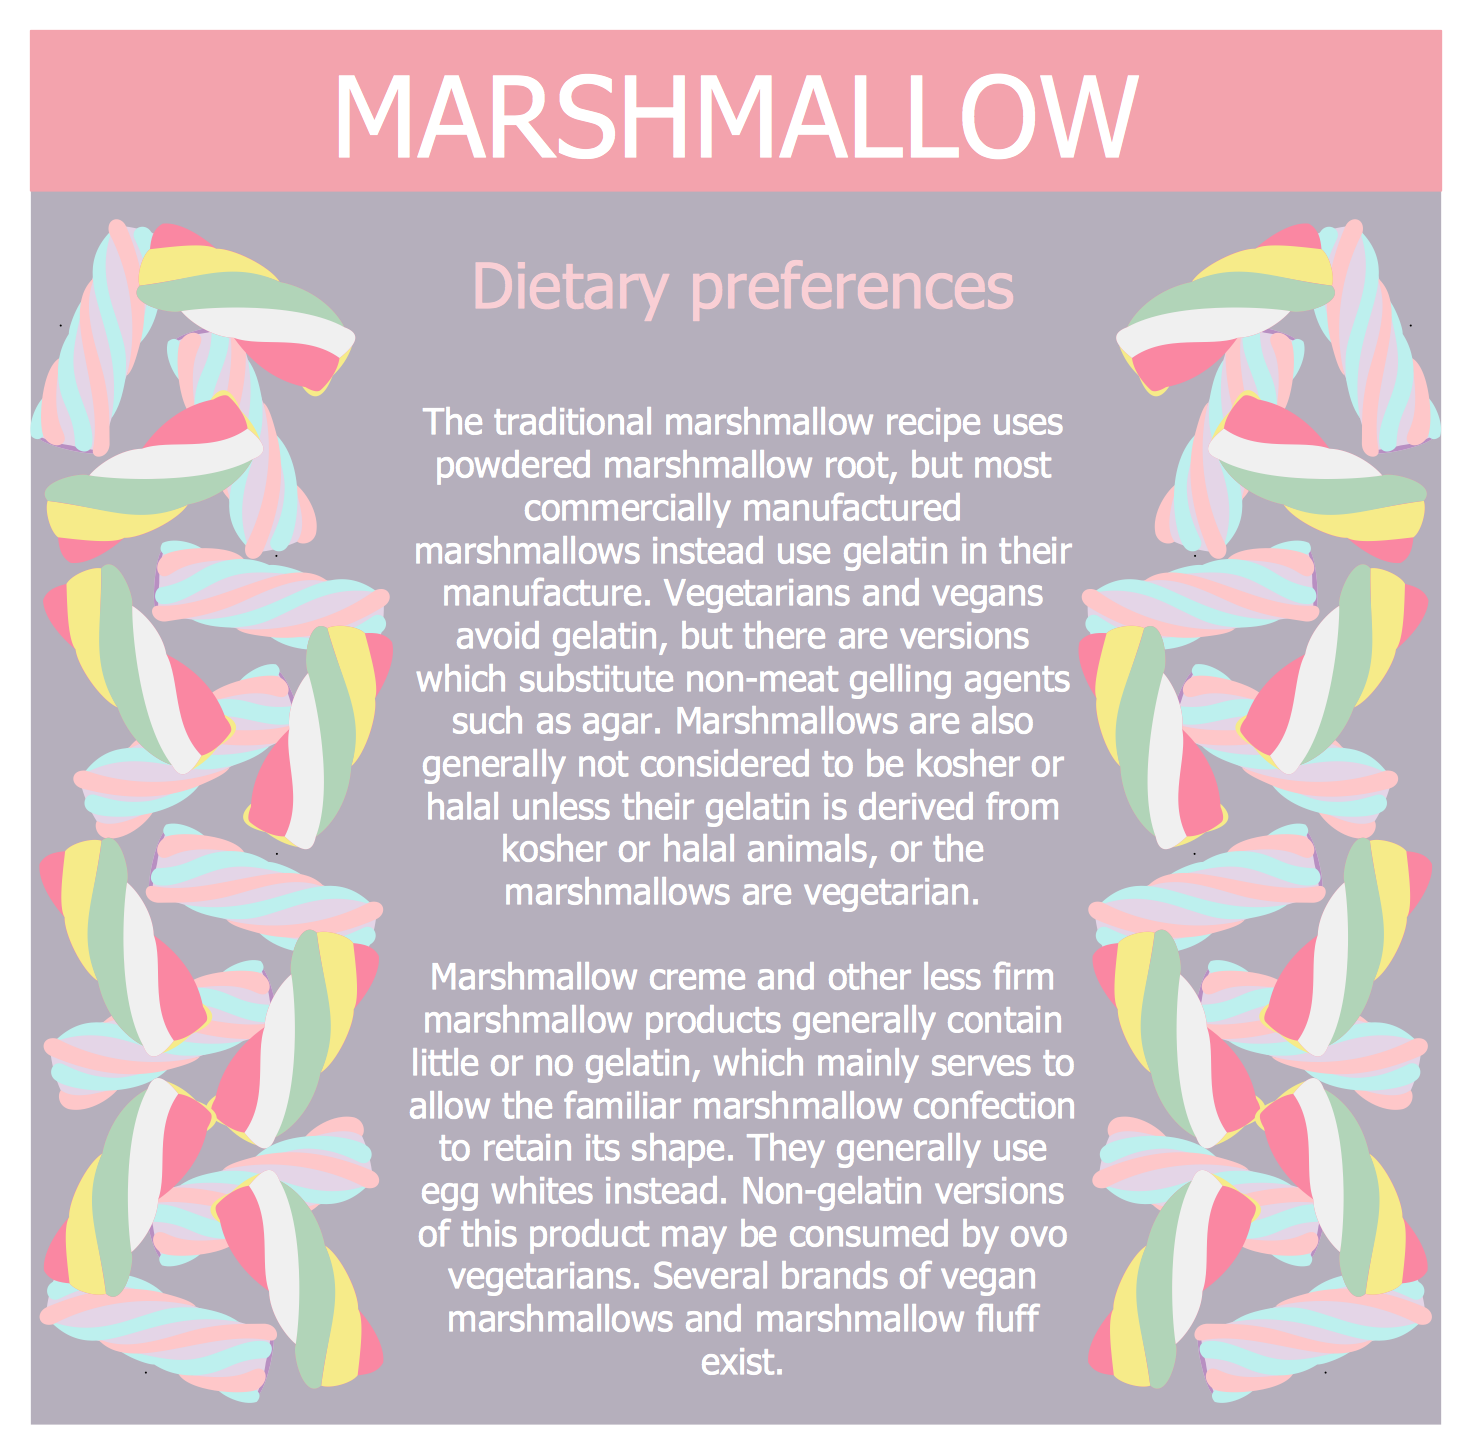 Healthy Meal Recipes - Marshmallow Dietary Preferences